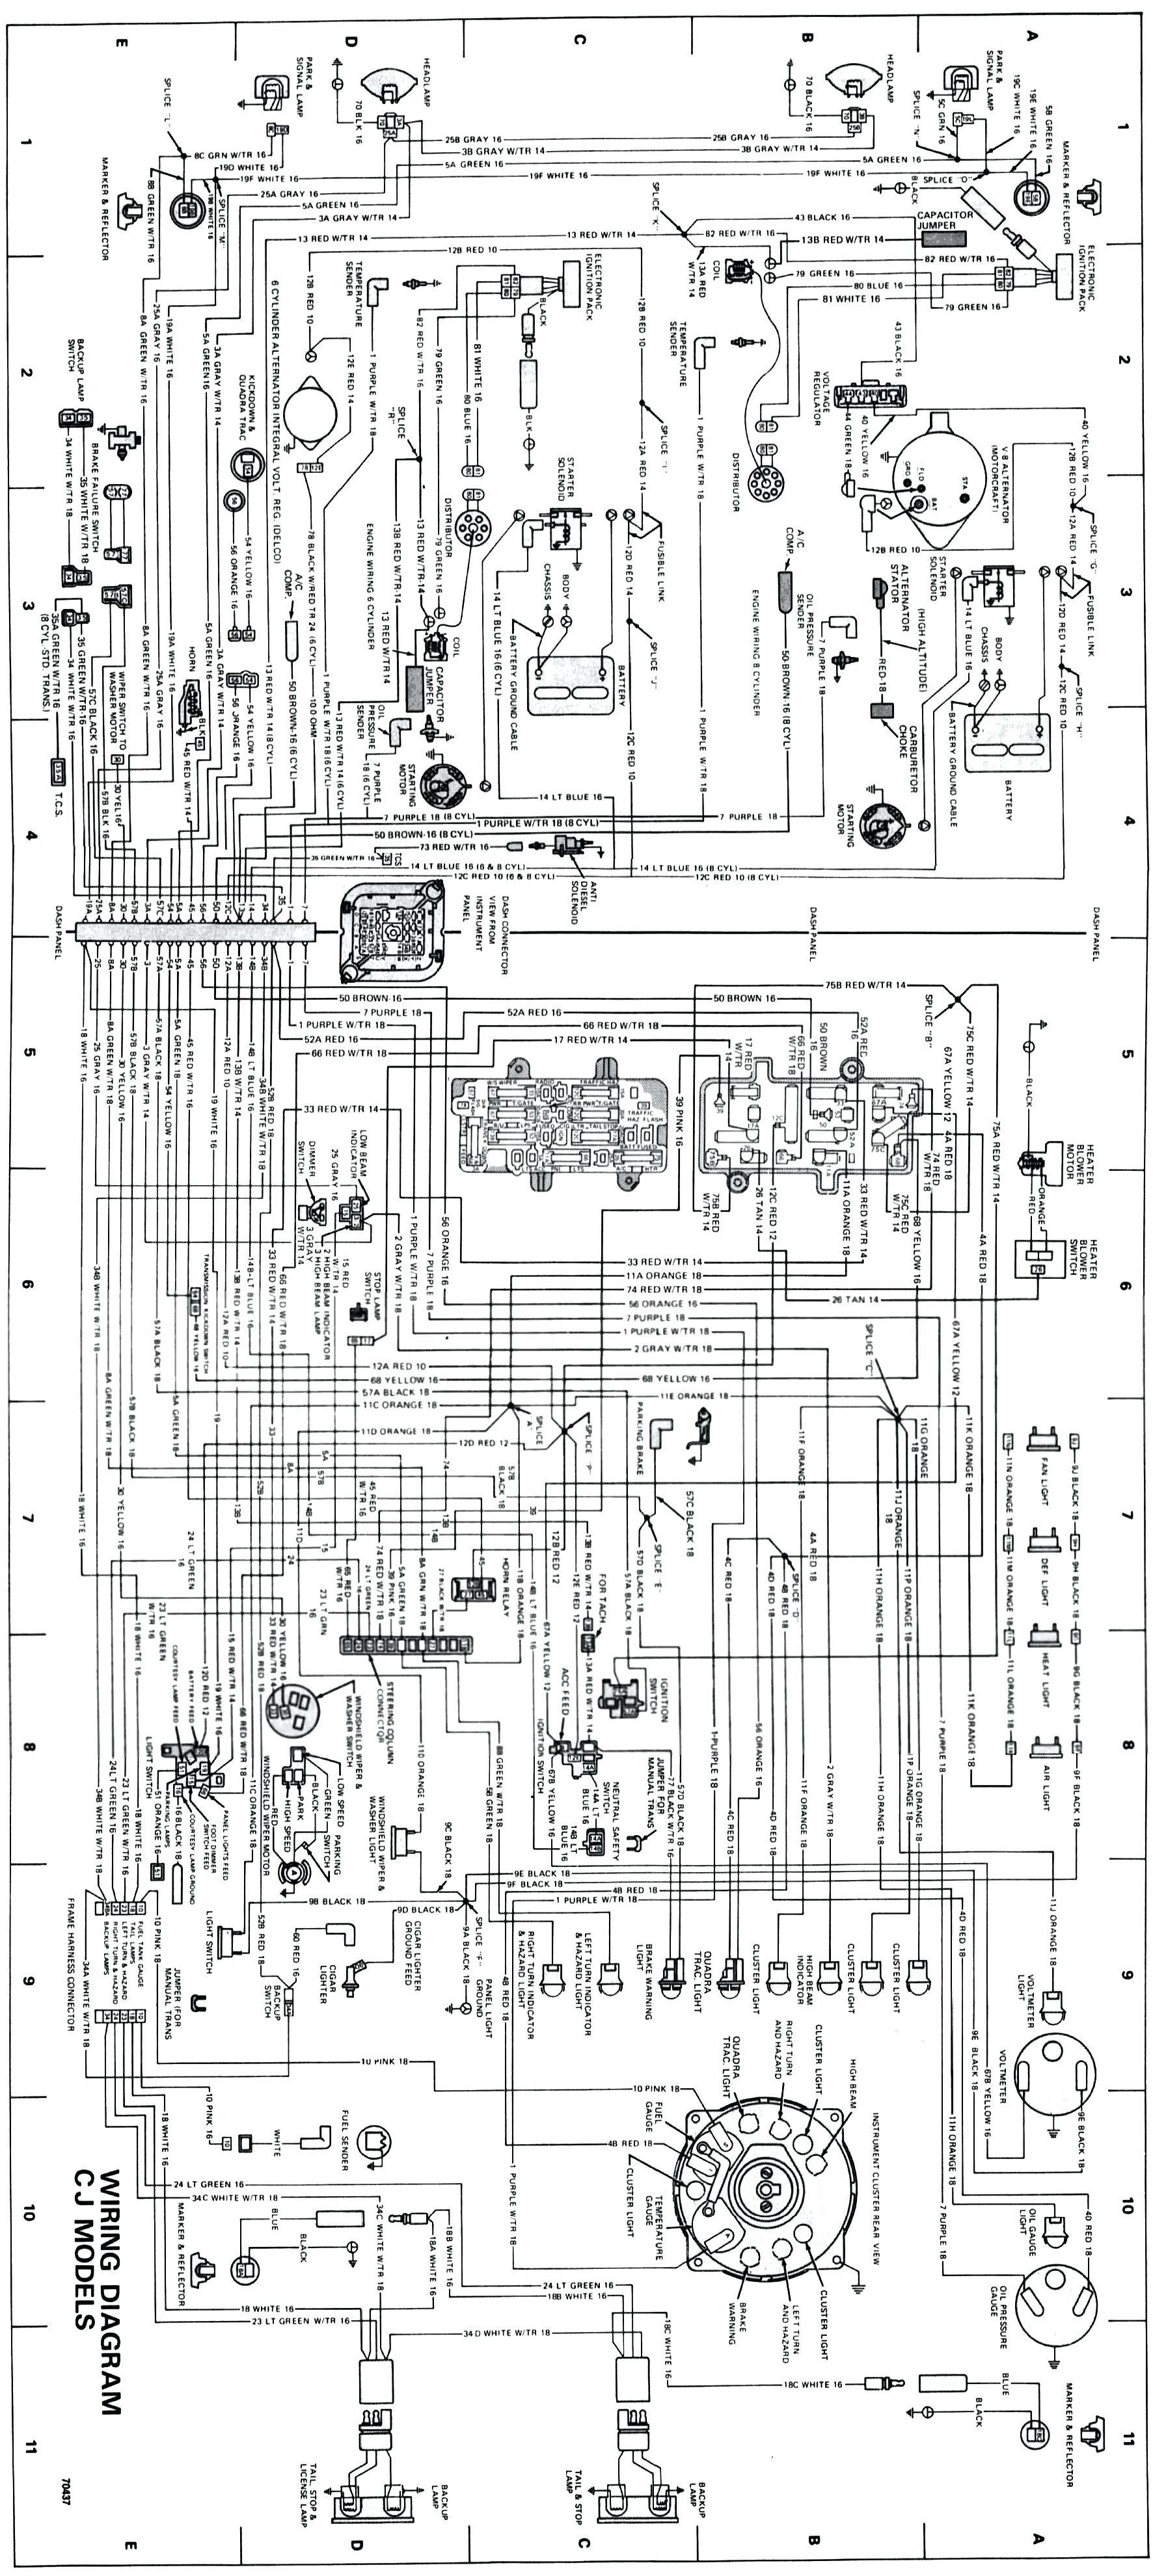 1986 jeep cj wiring diagram little wiring diagrams  cj7 jeep painless wiring diagrams wiring library diagram h7 jeep cj headlight switch wiring diagram 1986 jeep cj wiring diagram